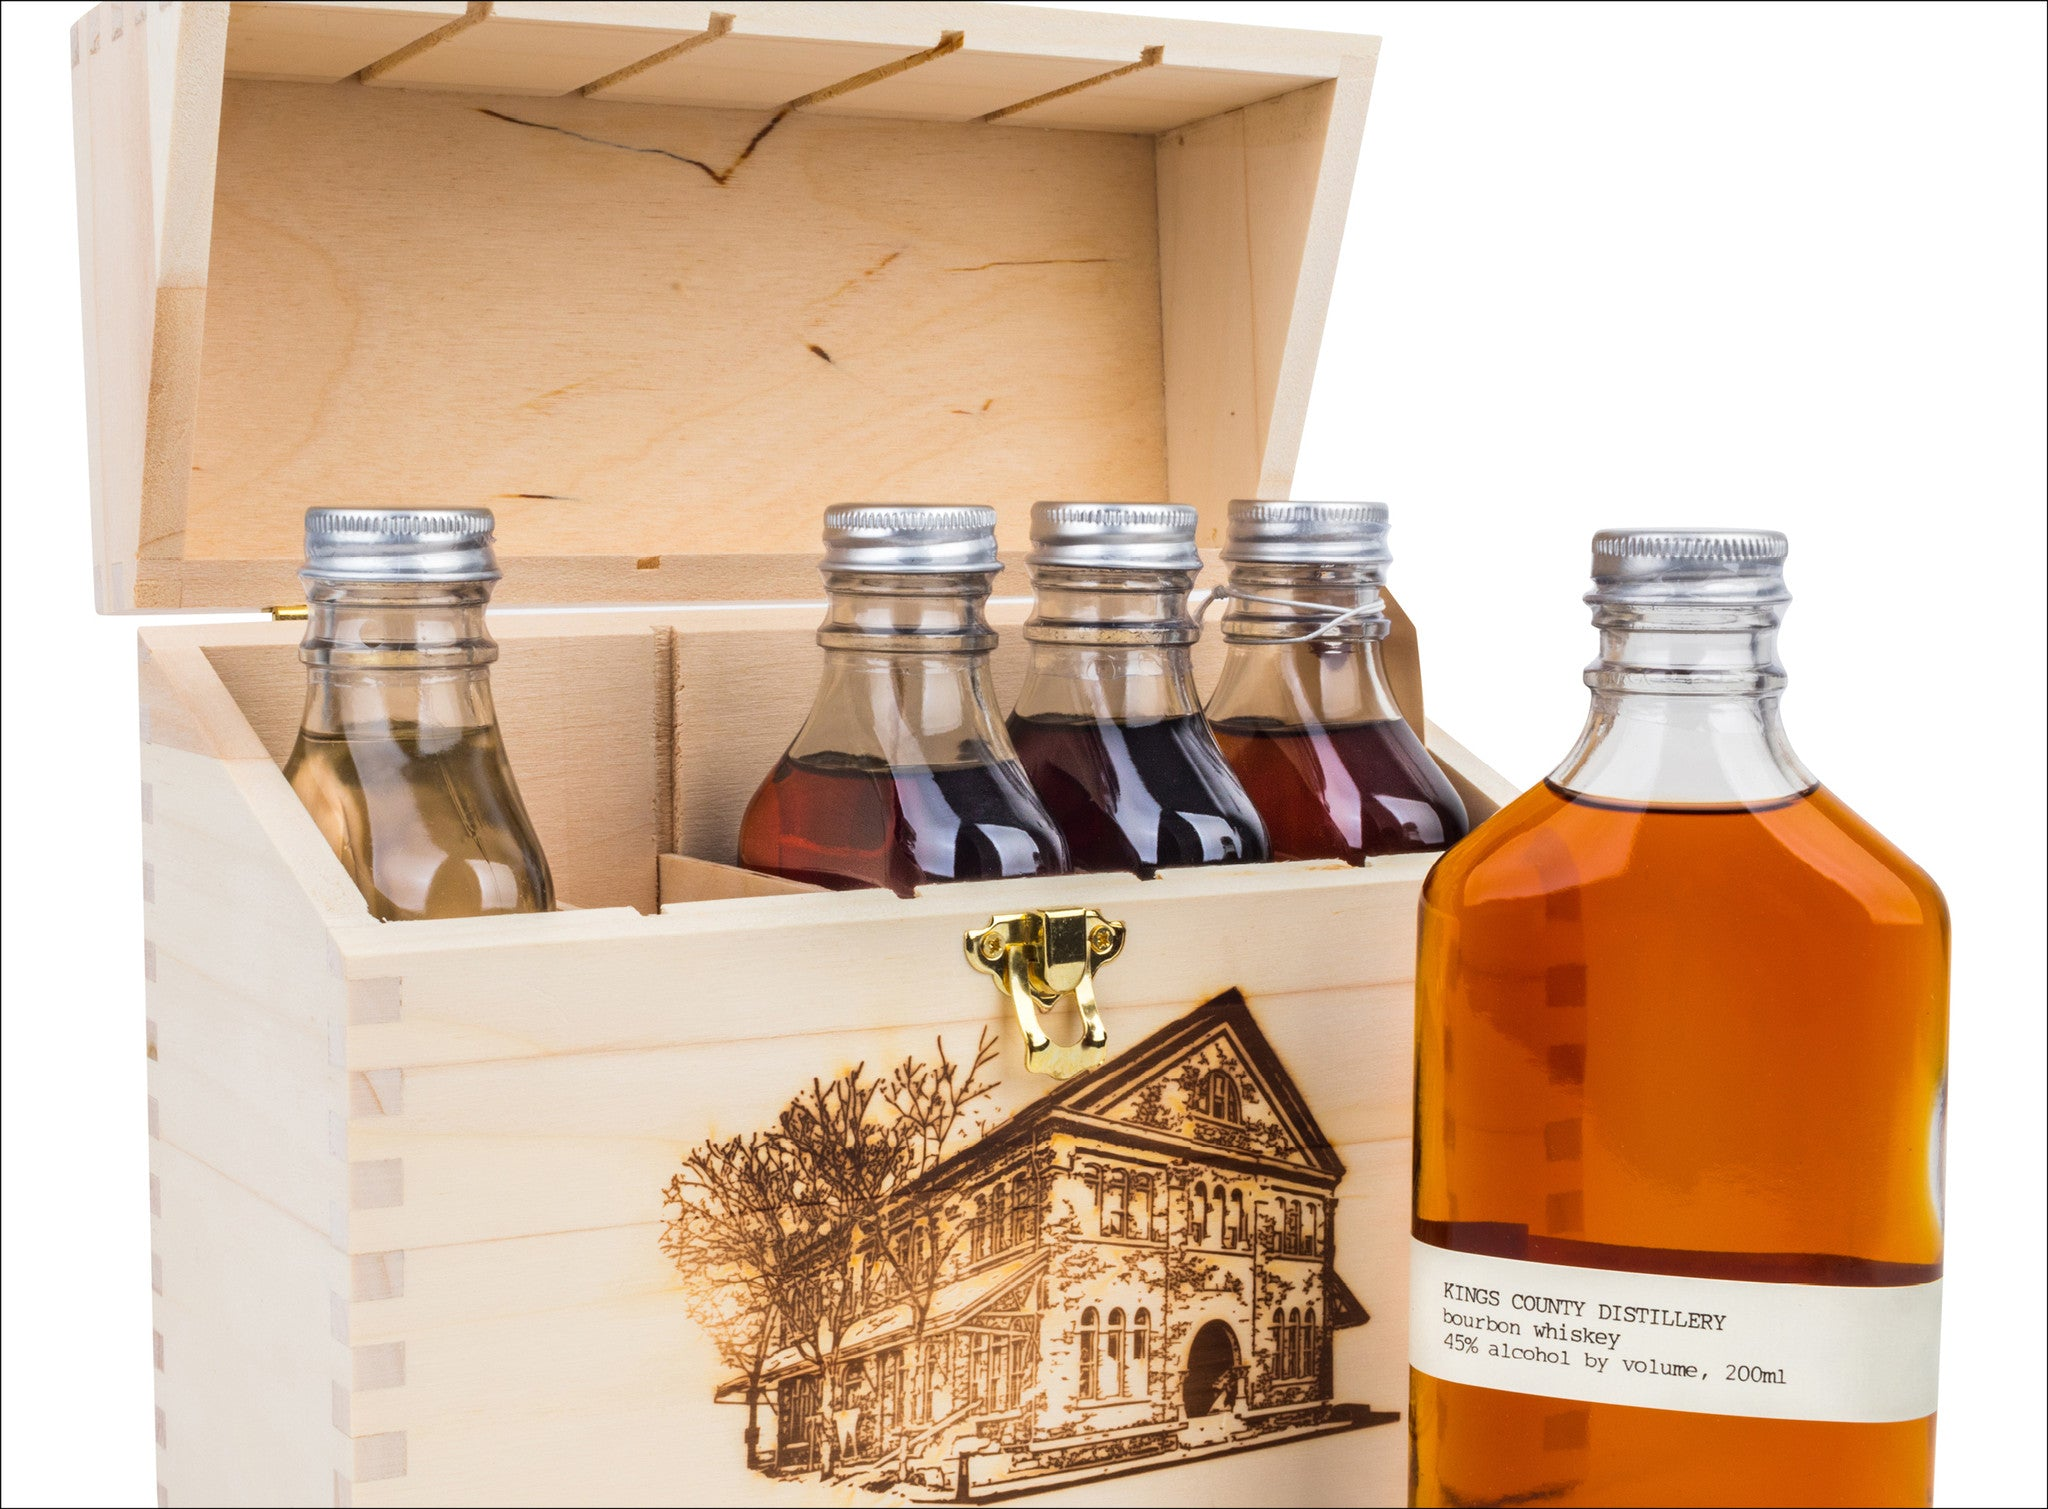 Once upon a time New York City was a hub of distilling. Then Prohibition happened (boo!) and even after alcohol was once again legal it took New York ... & Psstu2026 This Whiskey Gift Box Would Look Mighty Good Under A Tree ... Aboutintivar.Com